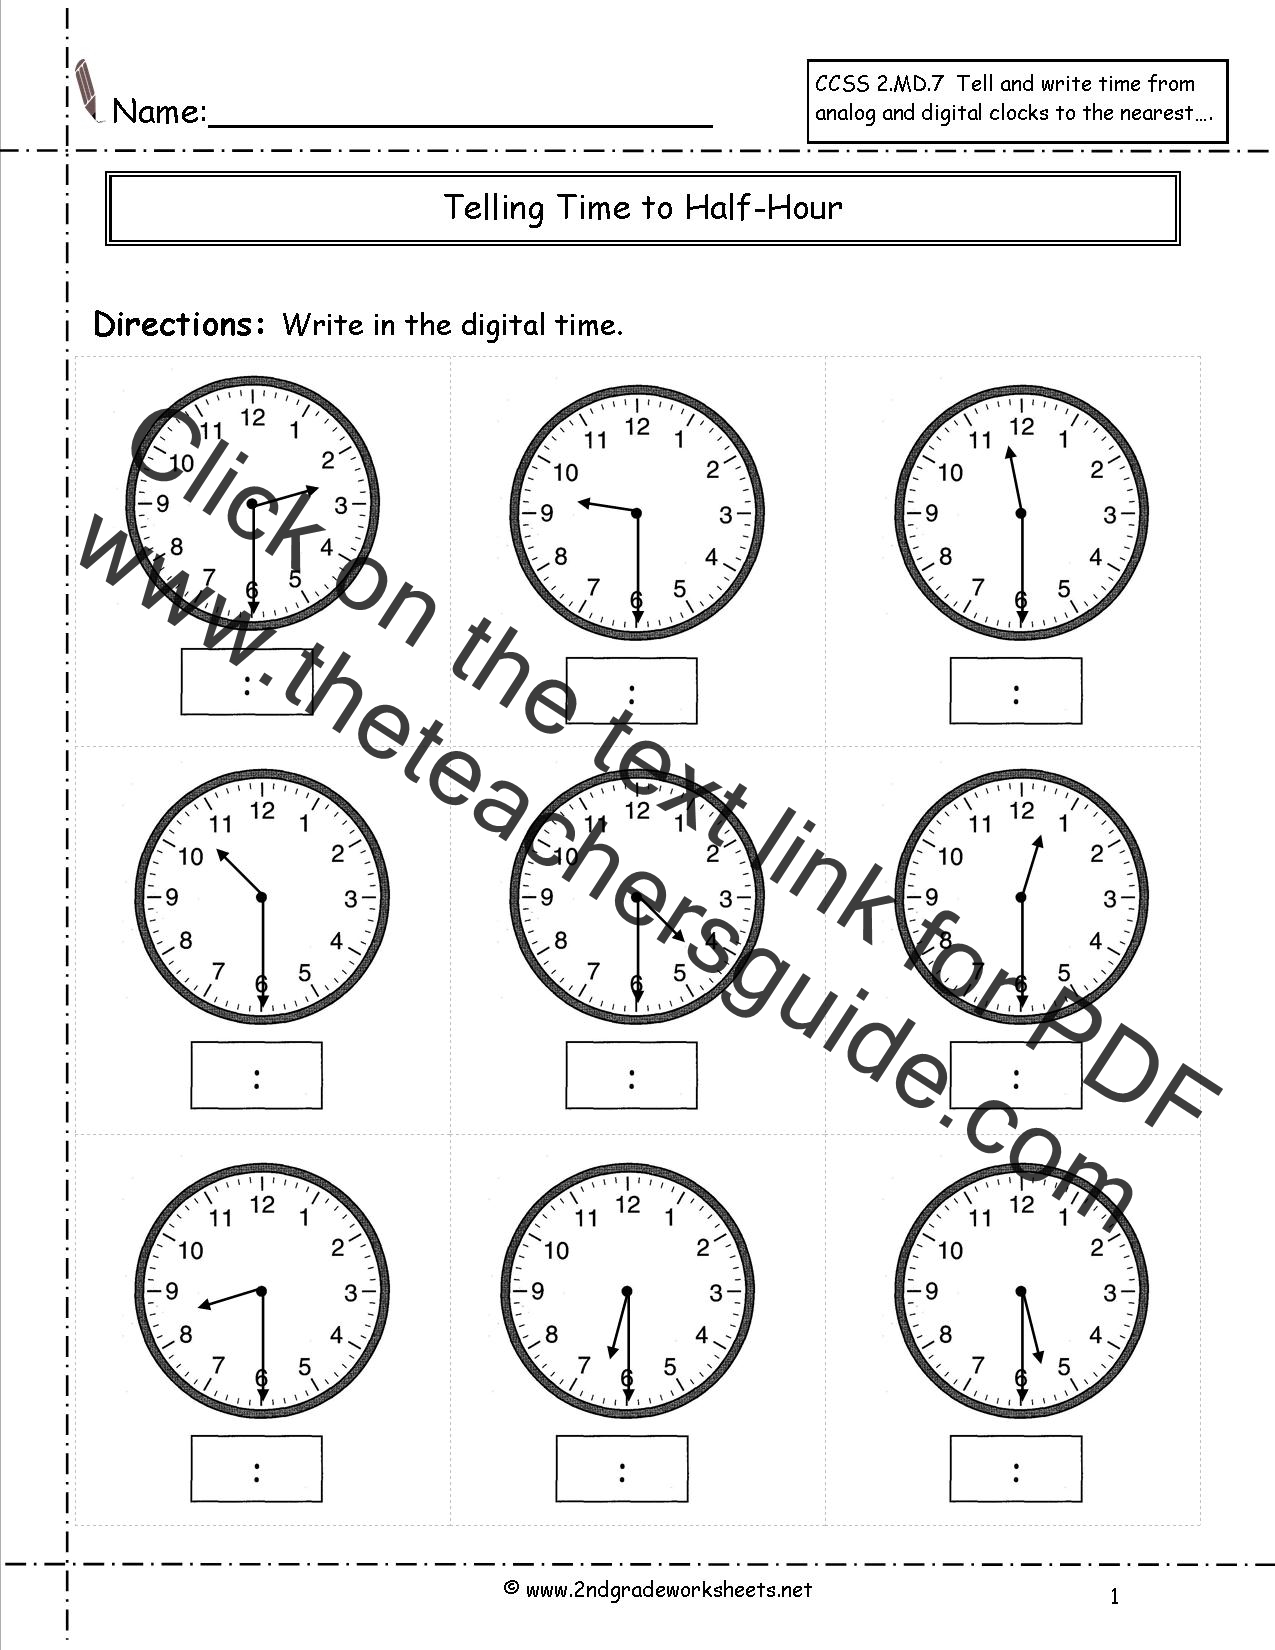 Worksheet Free Printable Telling Time Worksheets 2nd Grade telling and writing time worksheets to nearest half hour worksheet